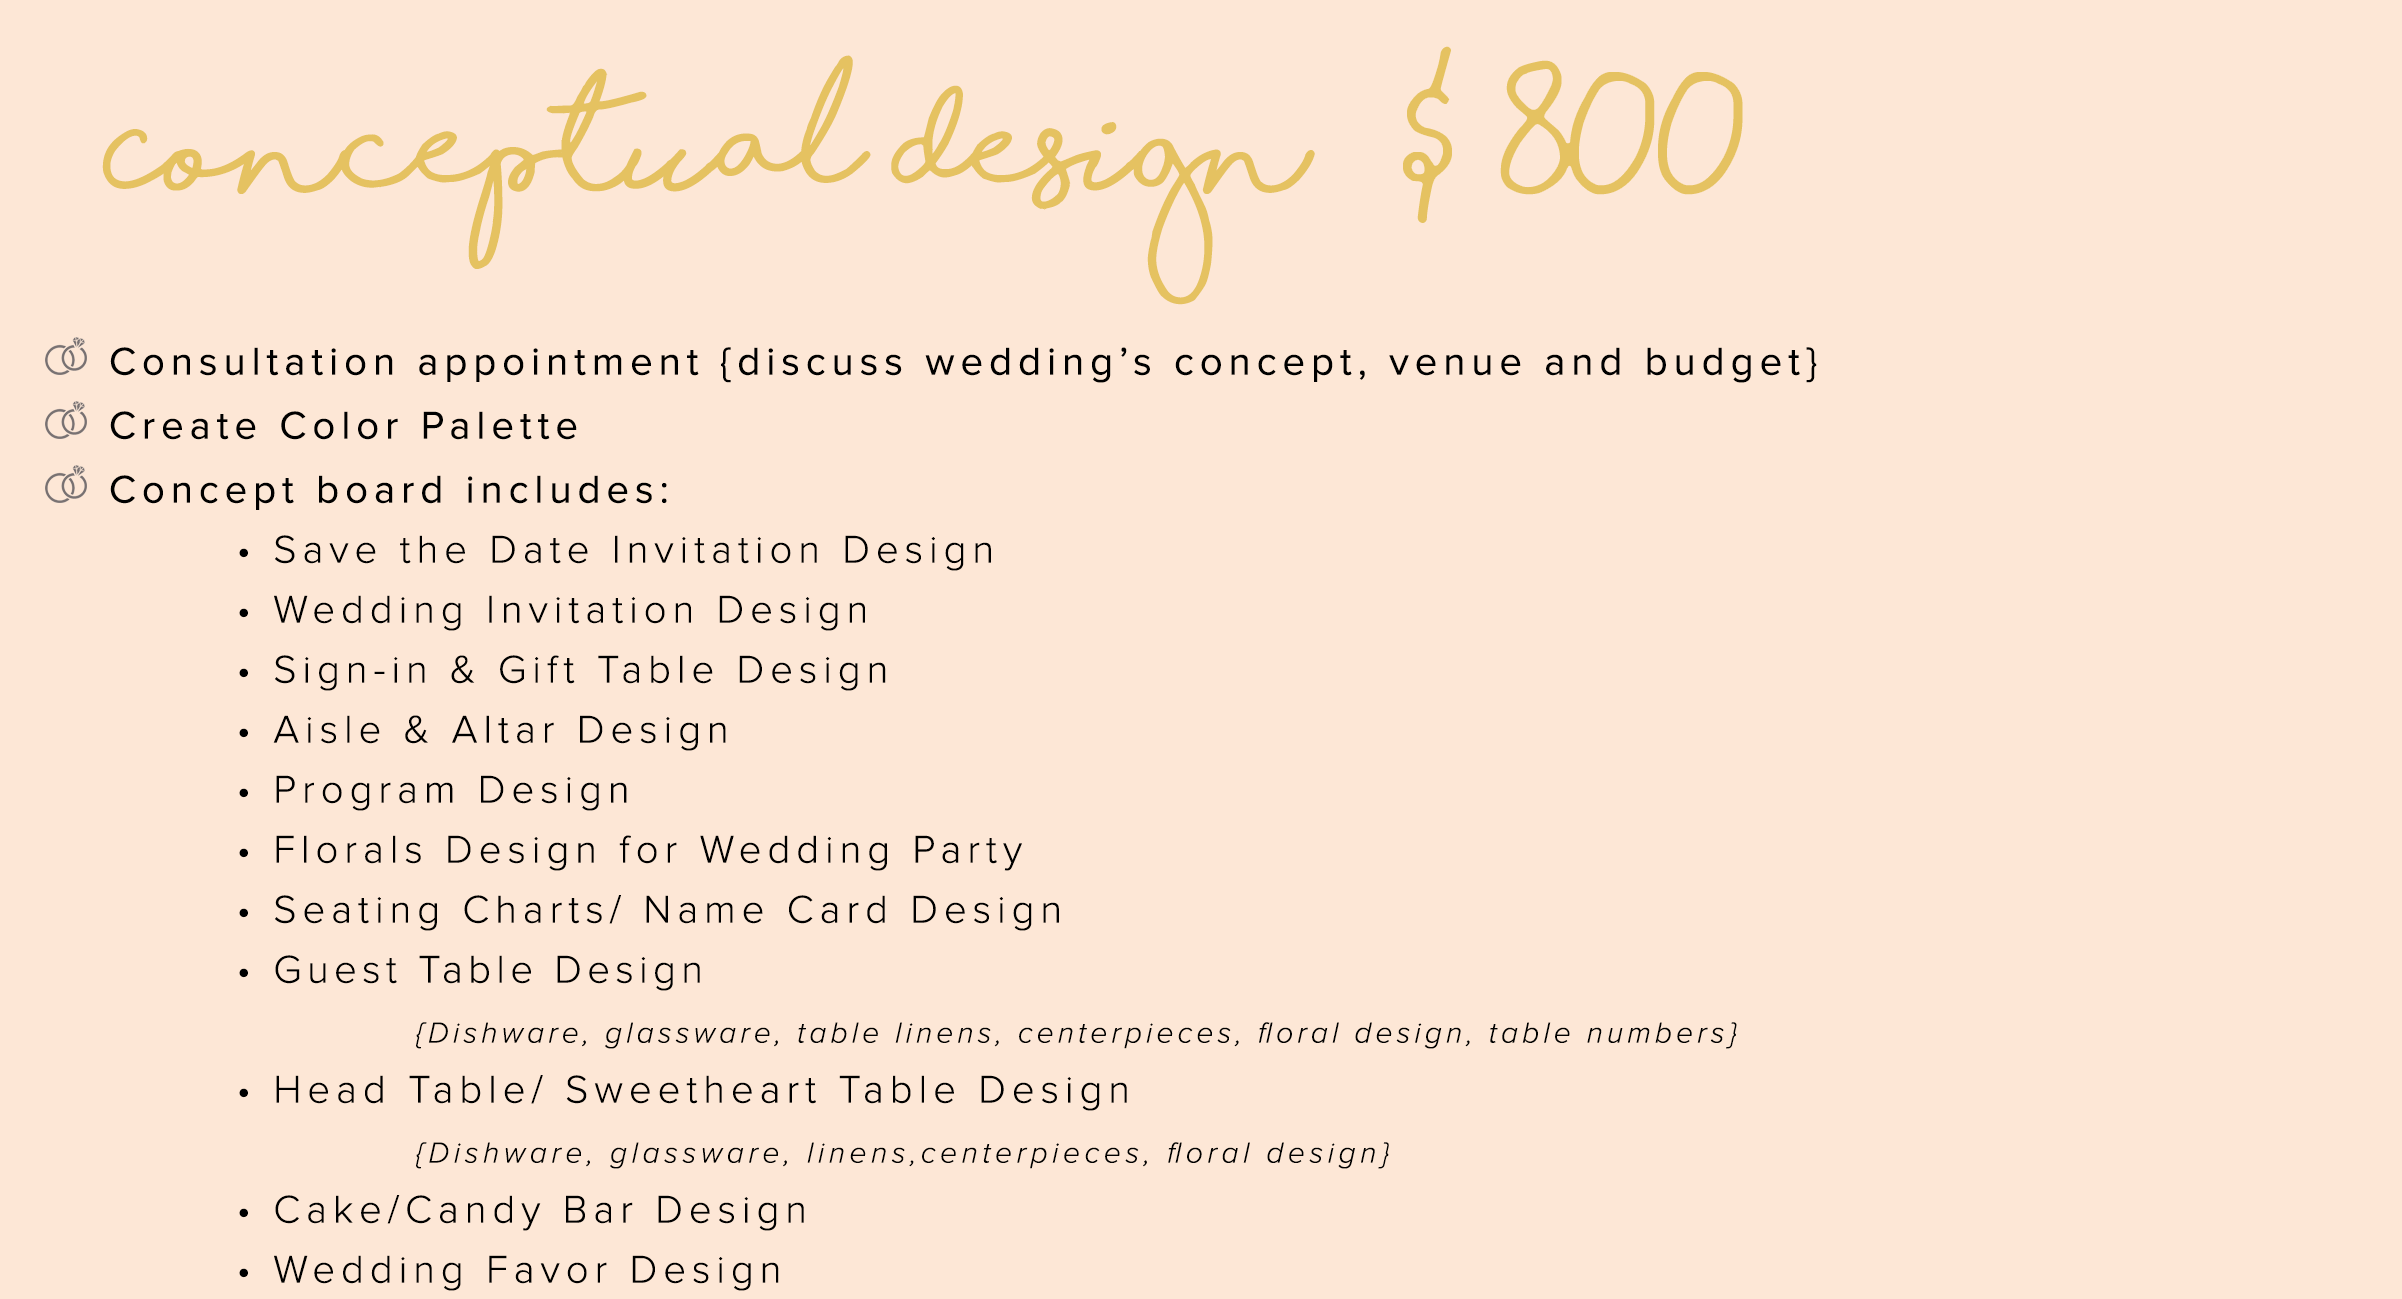 wedding_conceptual_design.png